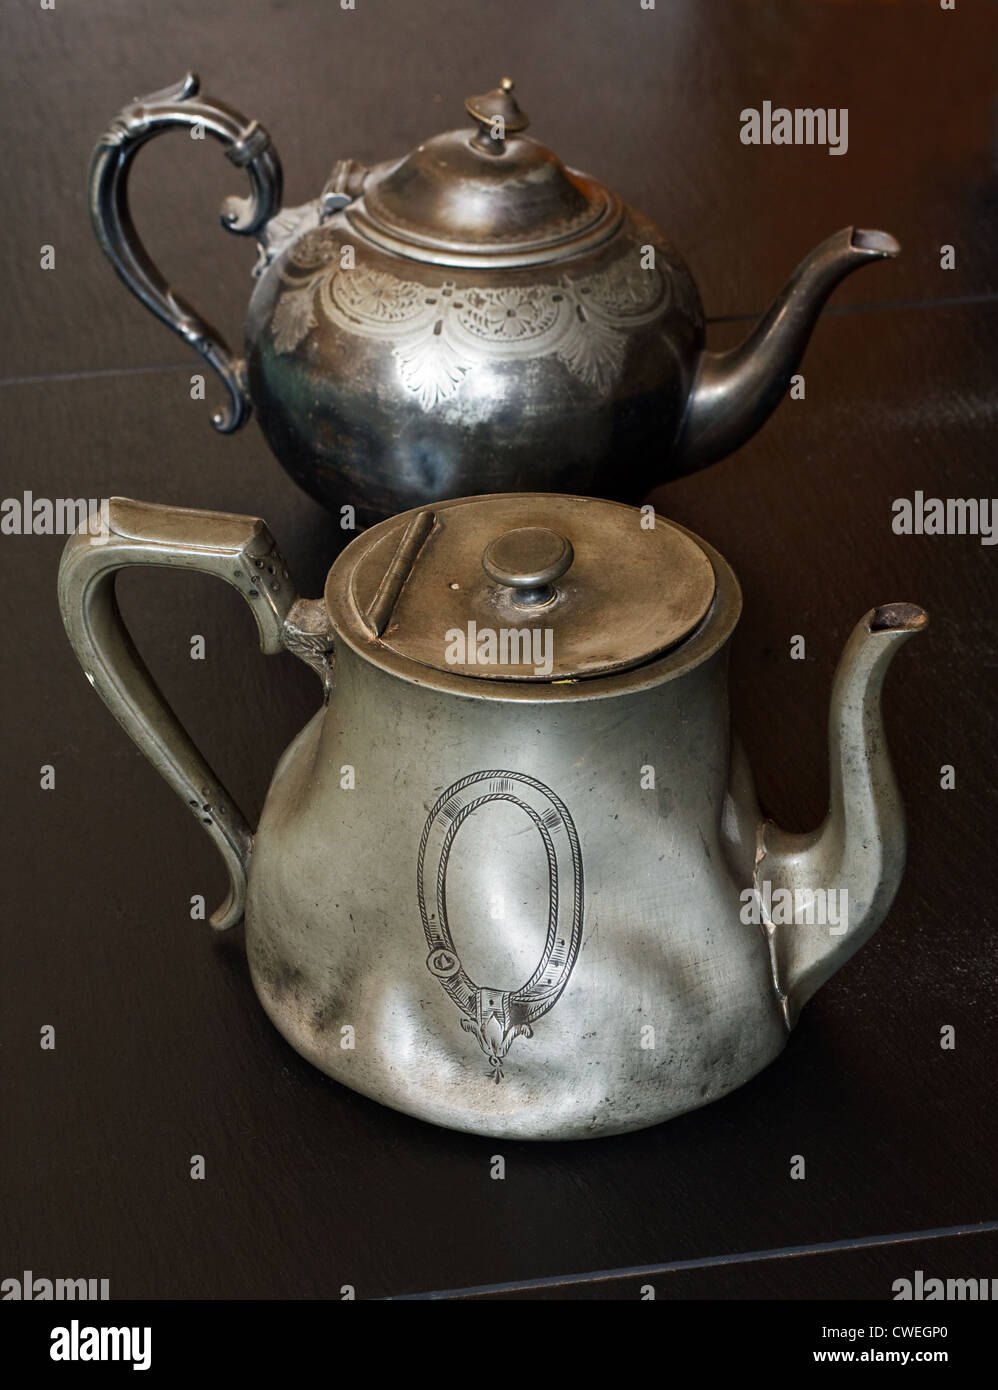 european traditional pewter teapots you might find in an antiques store or auction - Stock Image